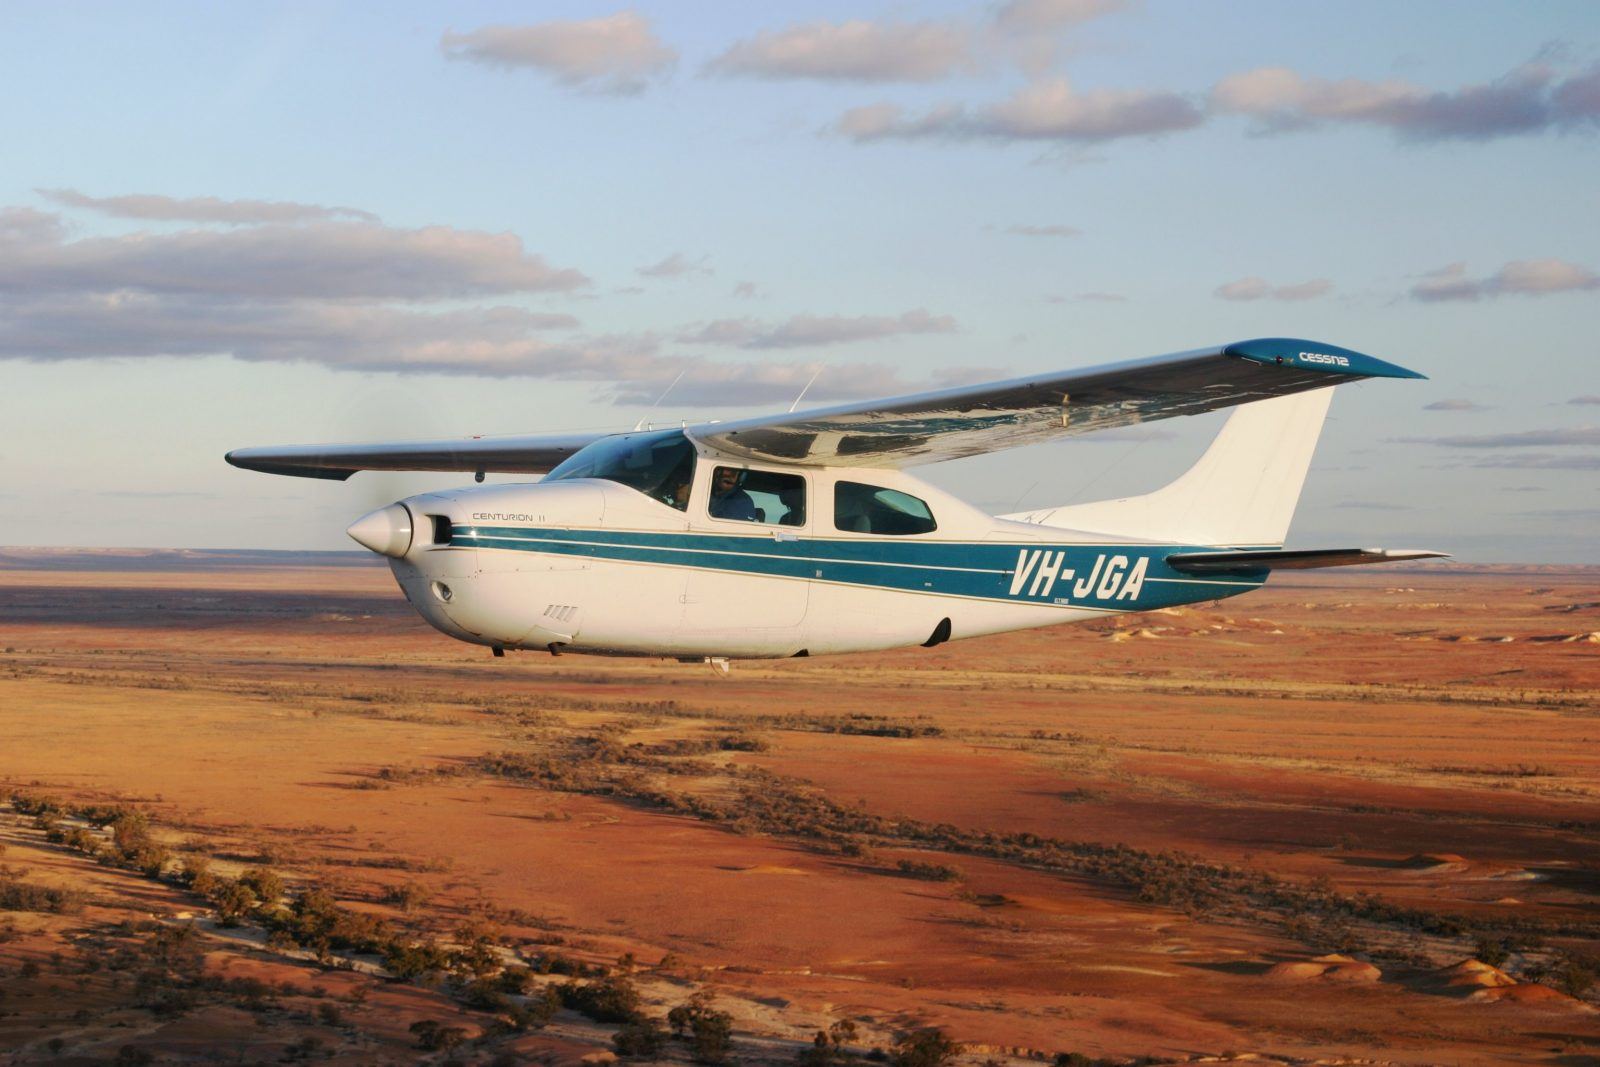 Wrightsair aircraft takes passengers for a scenic flight over spectacular Anna Creek Painted Hills